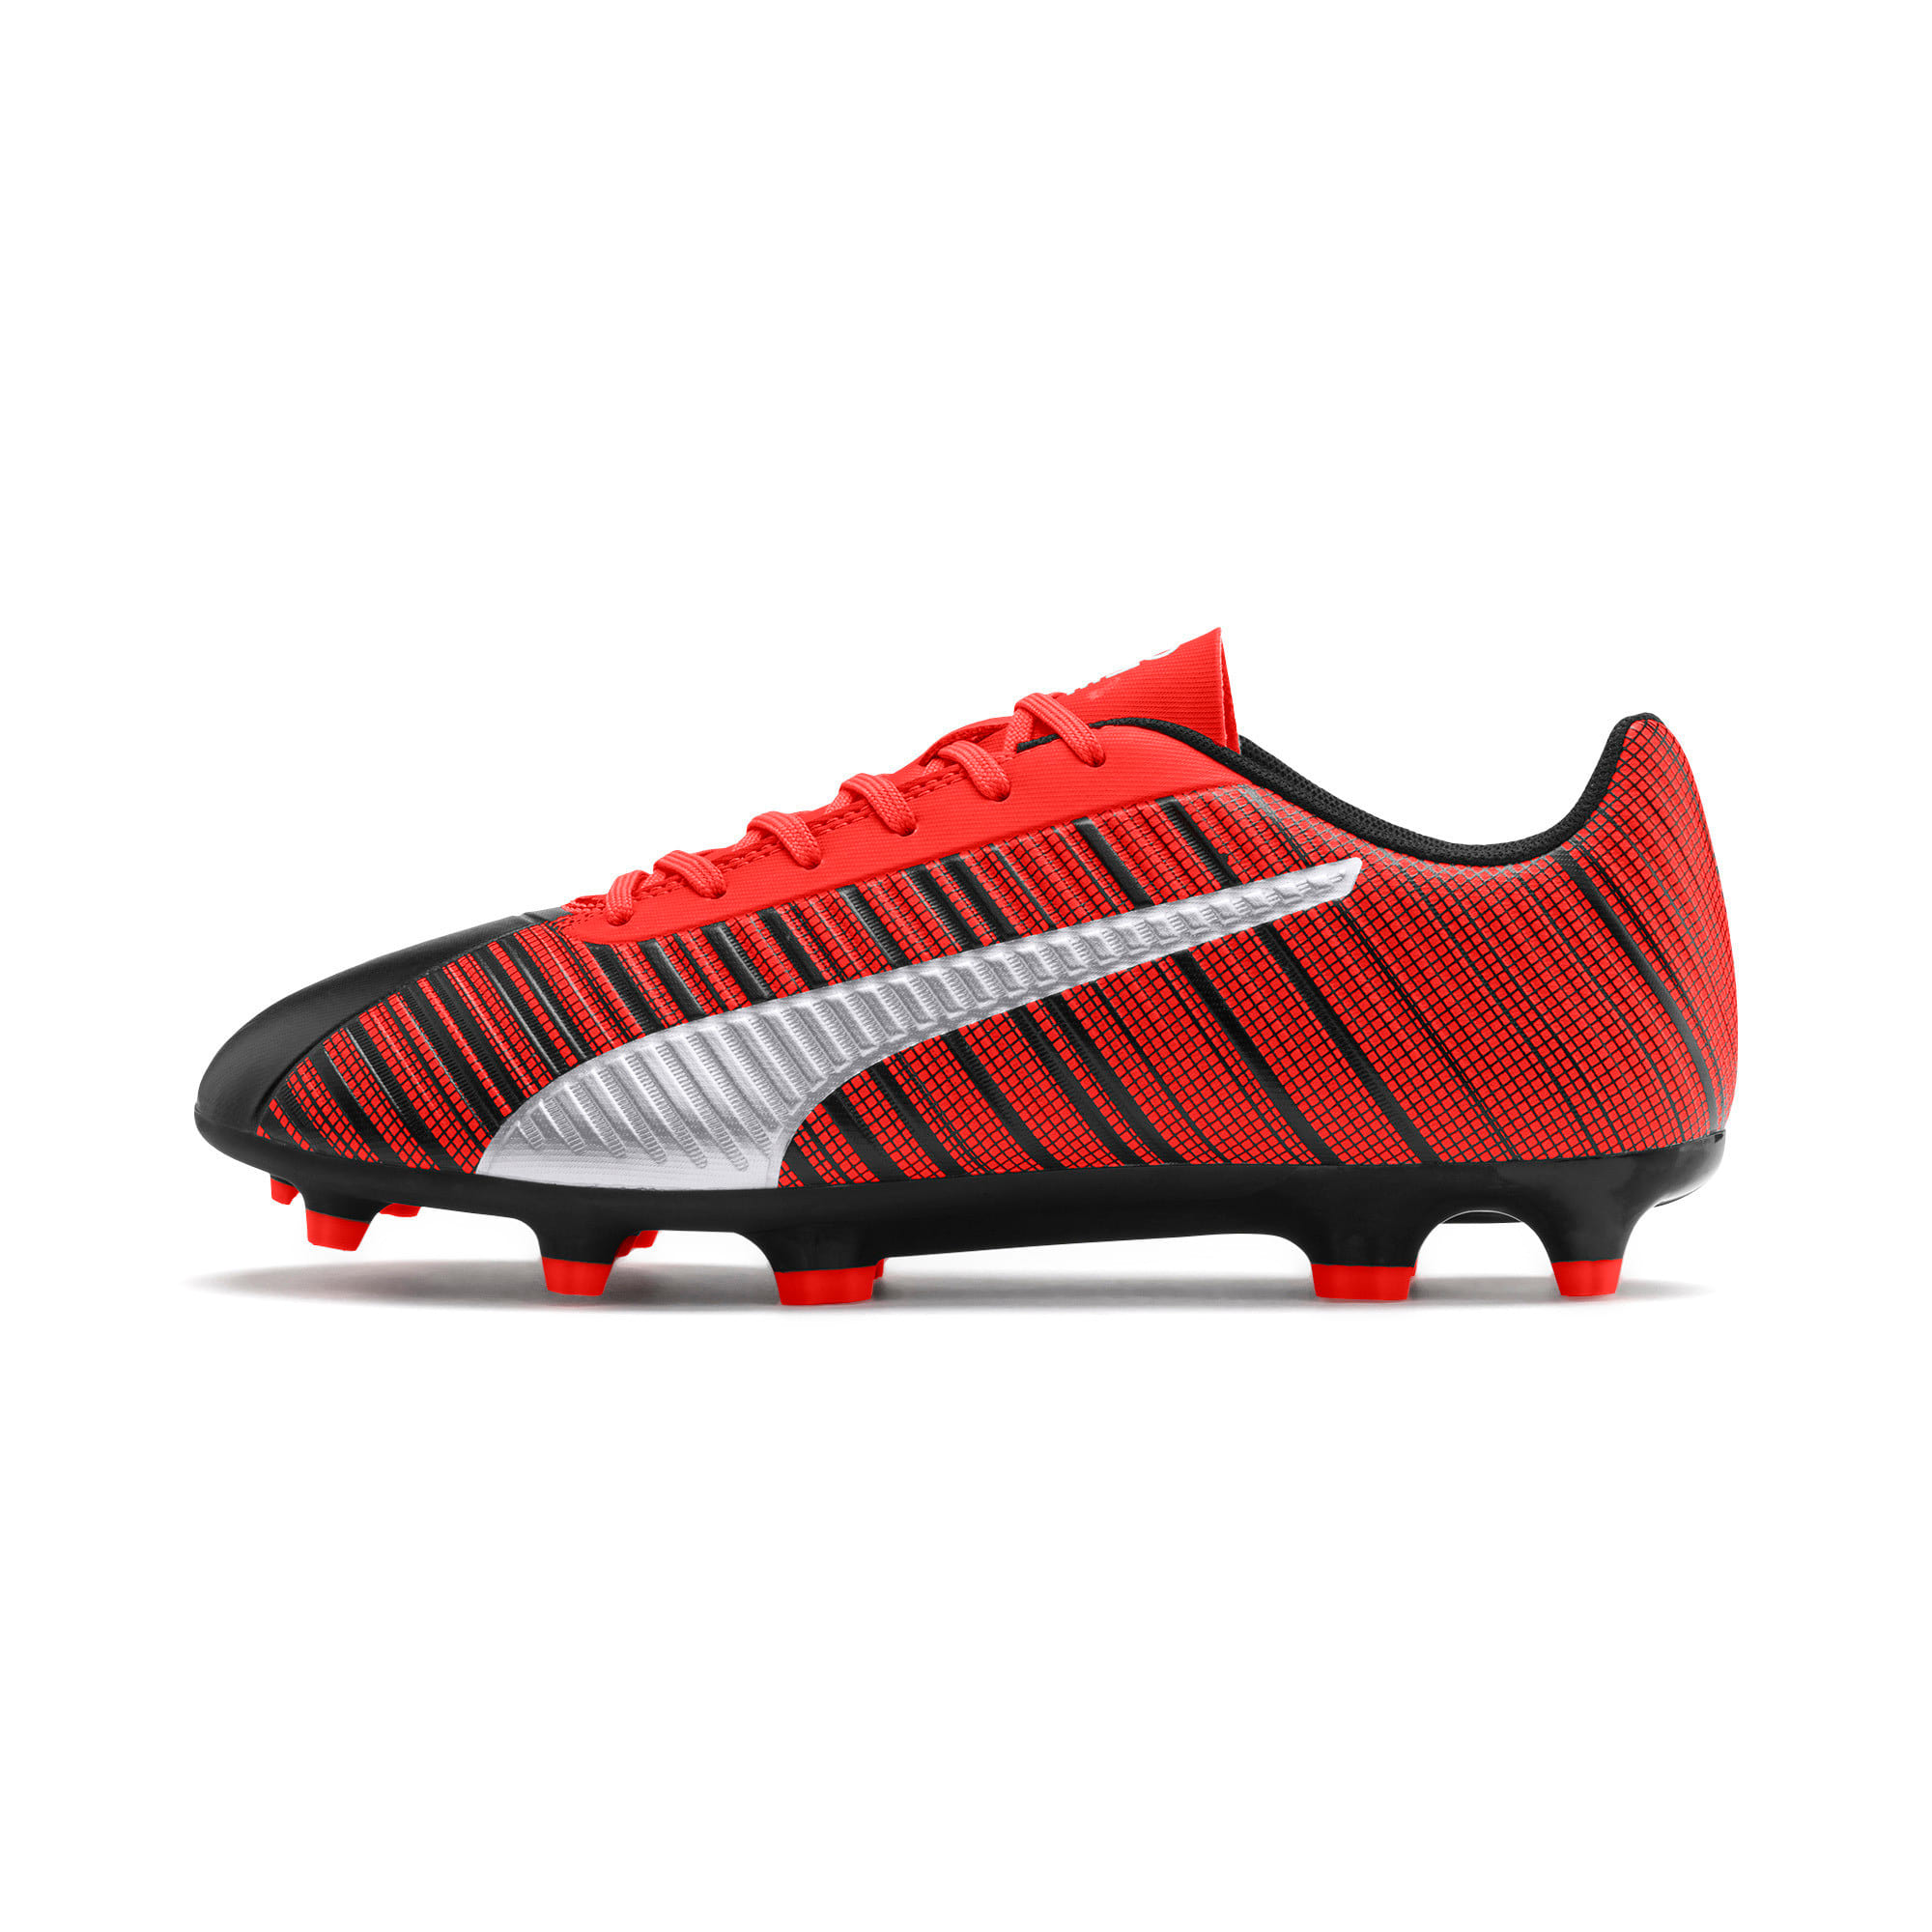 Thumbnail 1 of PUMA ONE 5.4 Men's FG/AG Football Boots, Black-Nrgy Red-Aged Silver, medium